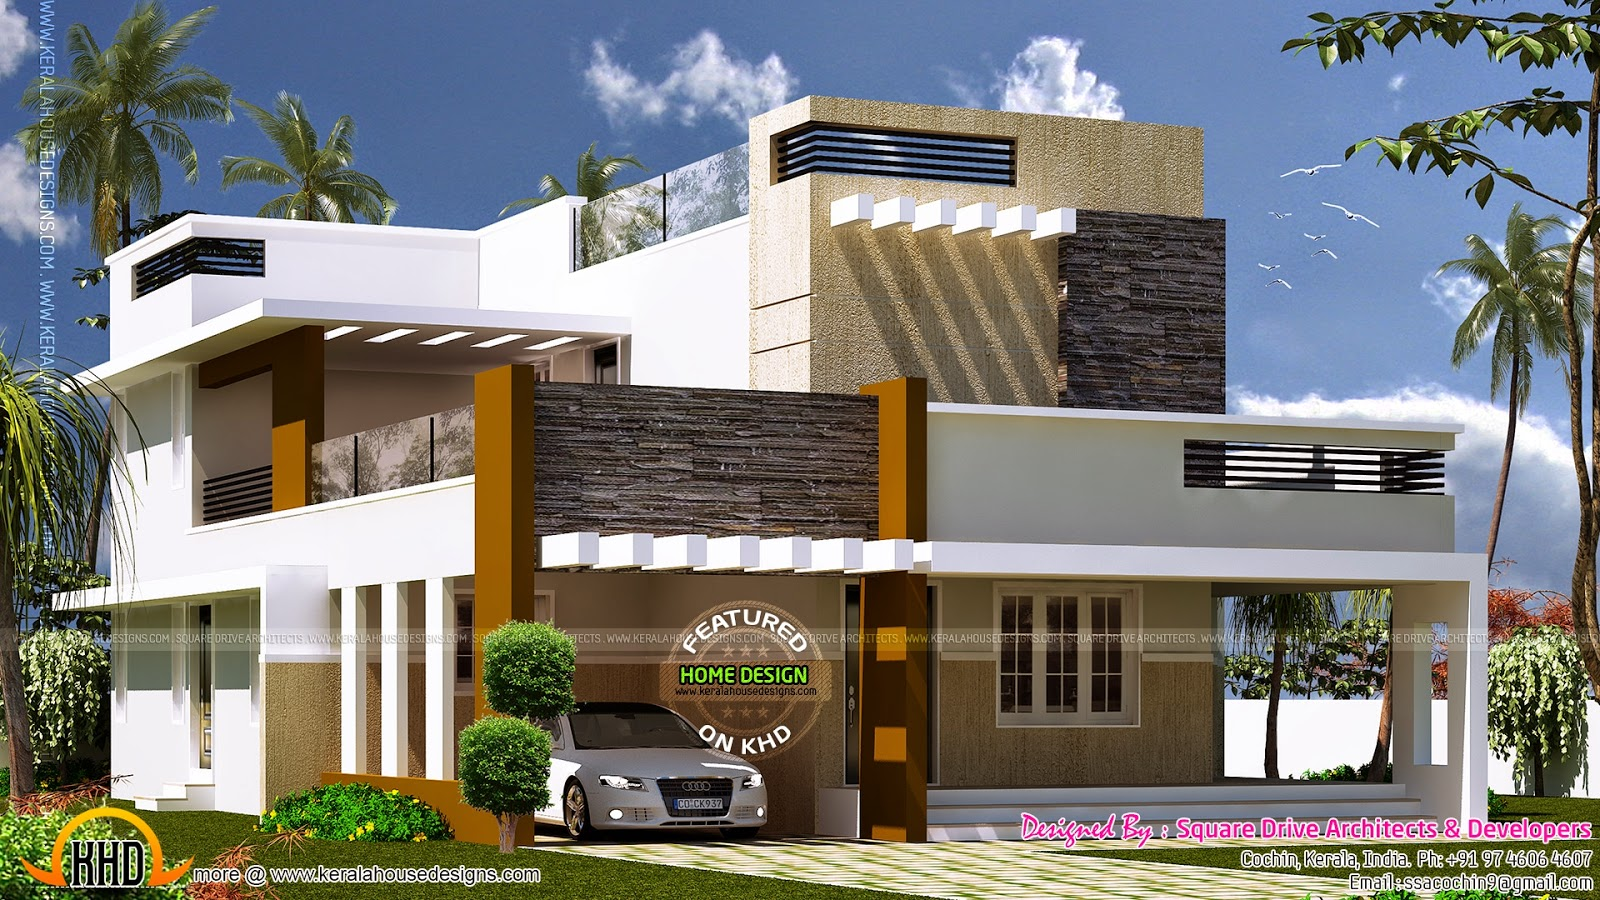 Duplex house plan india keralahousedesigns Indian house exterior design